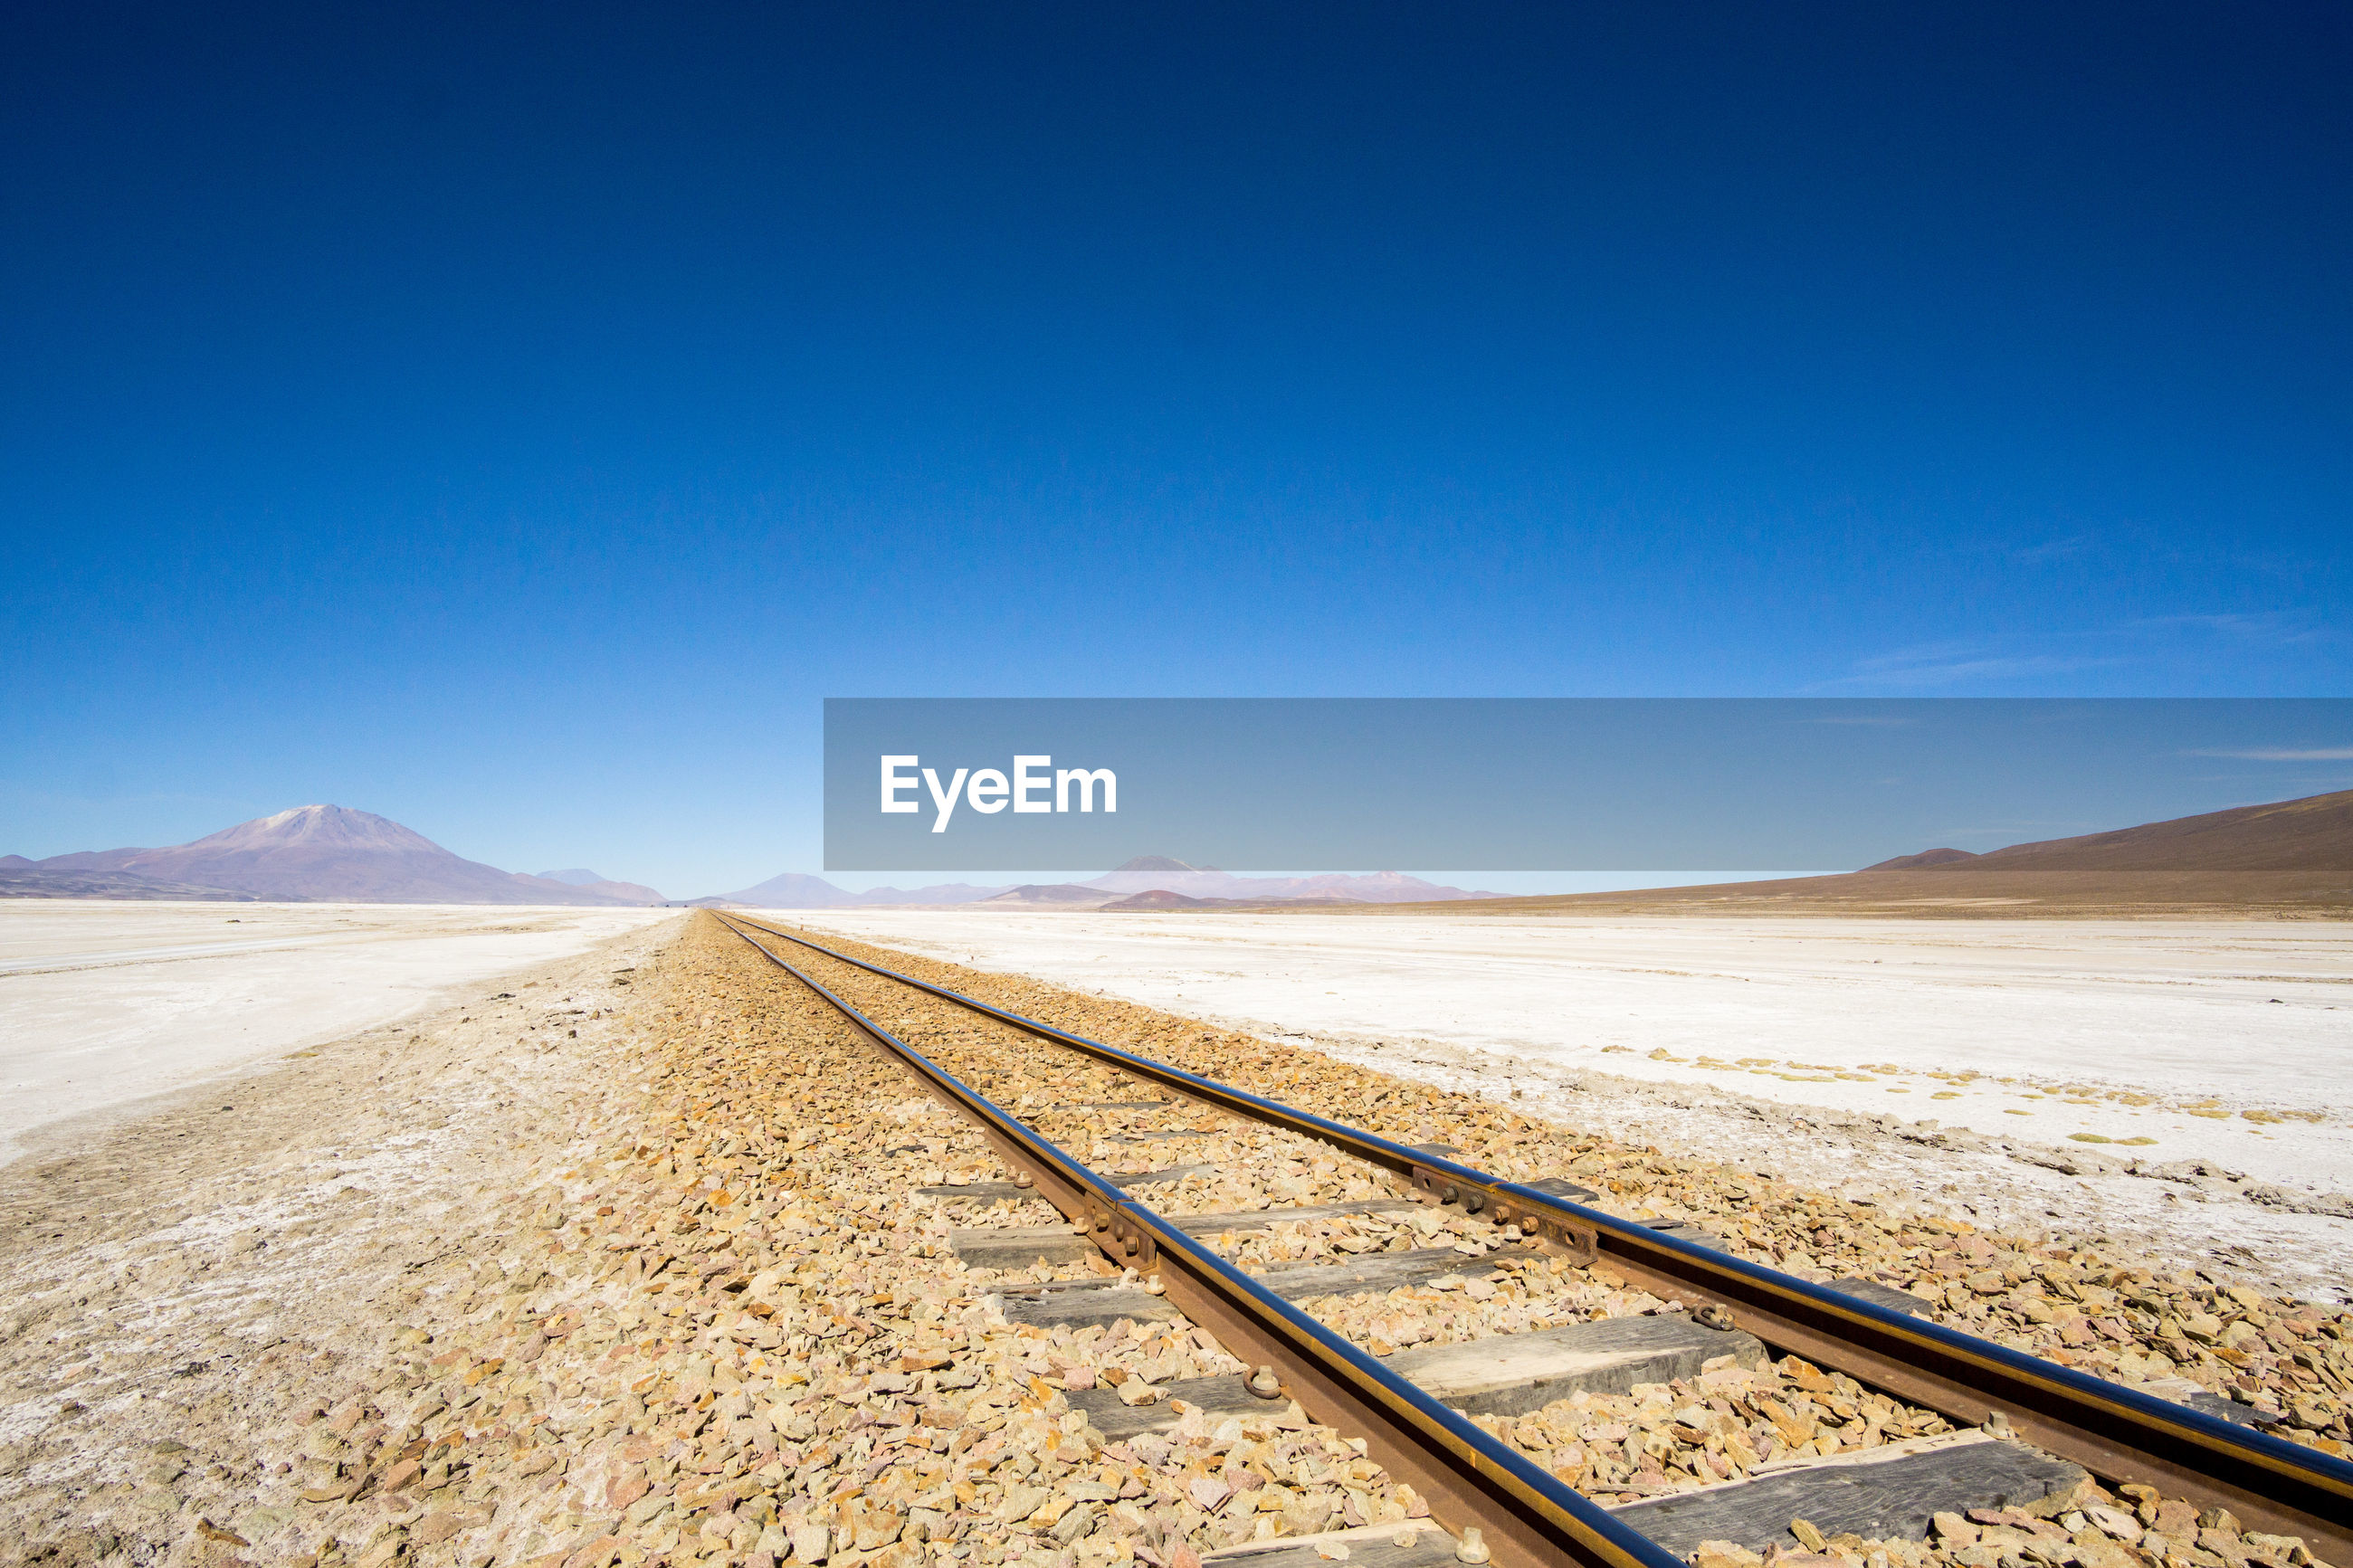 Scenic view of train tracks in desert against clear blue sky